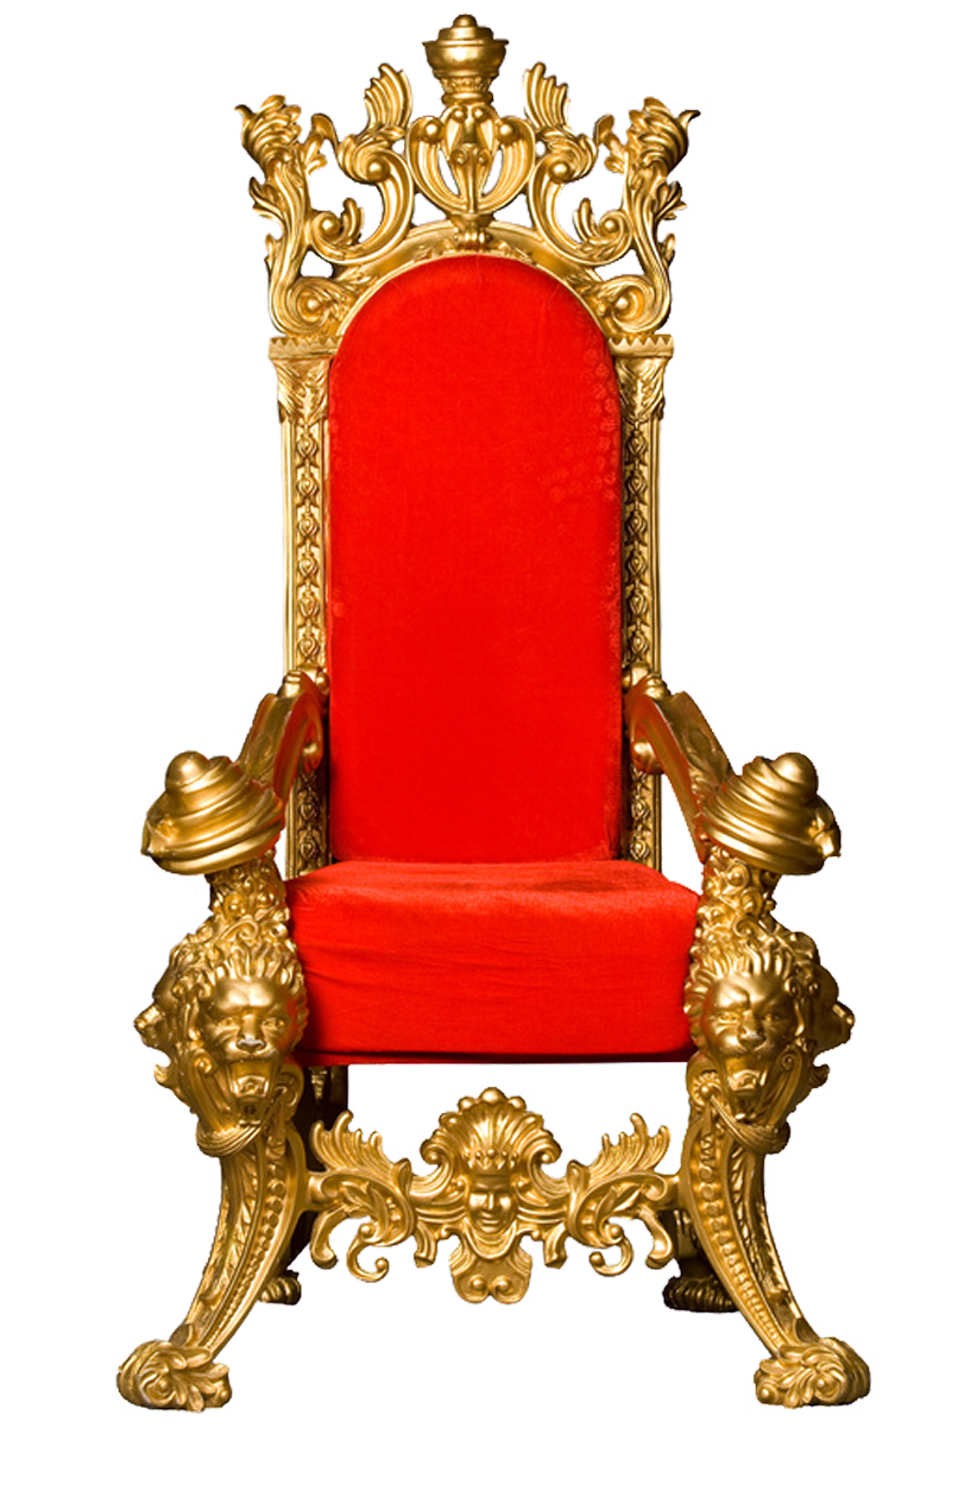 King chair png. Throne clip art red